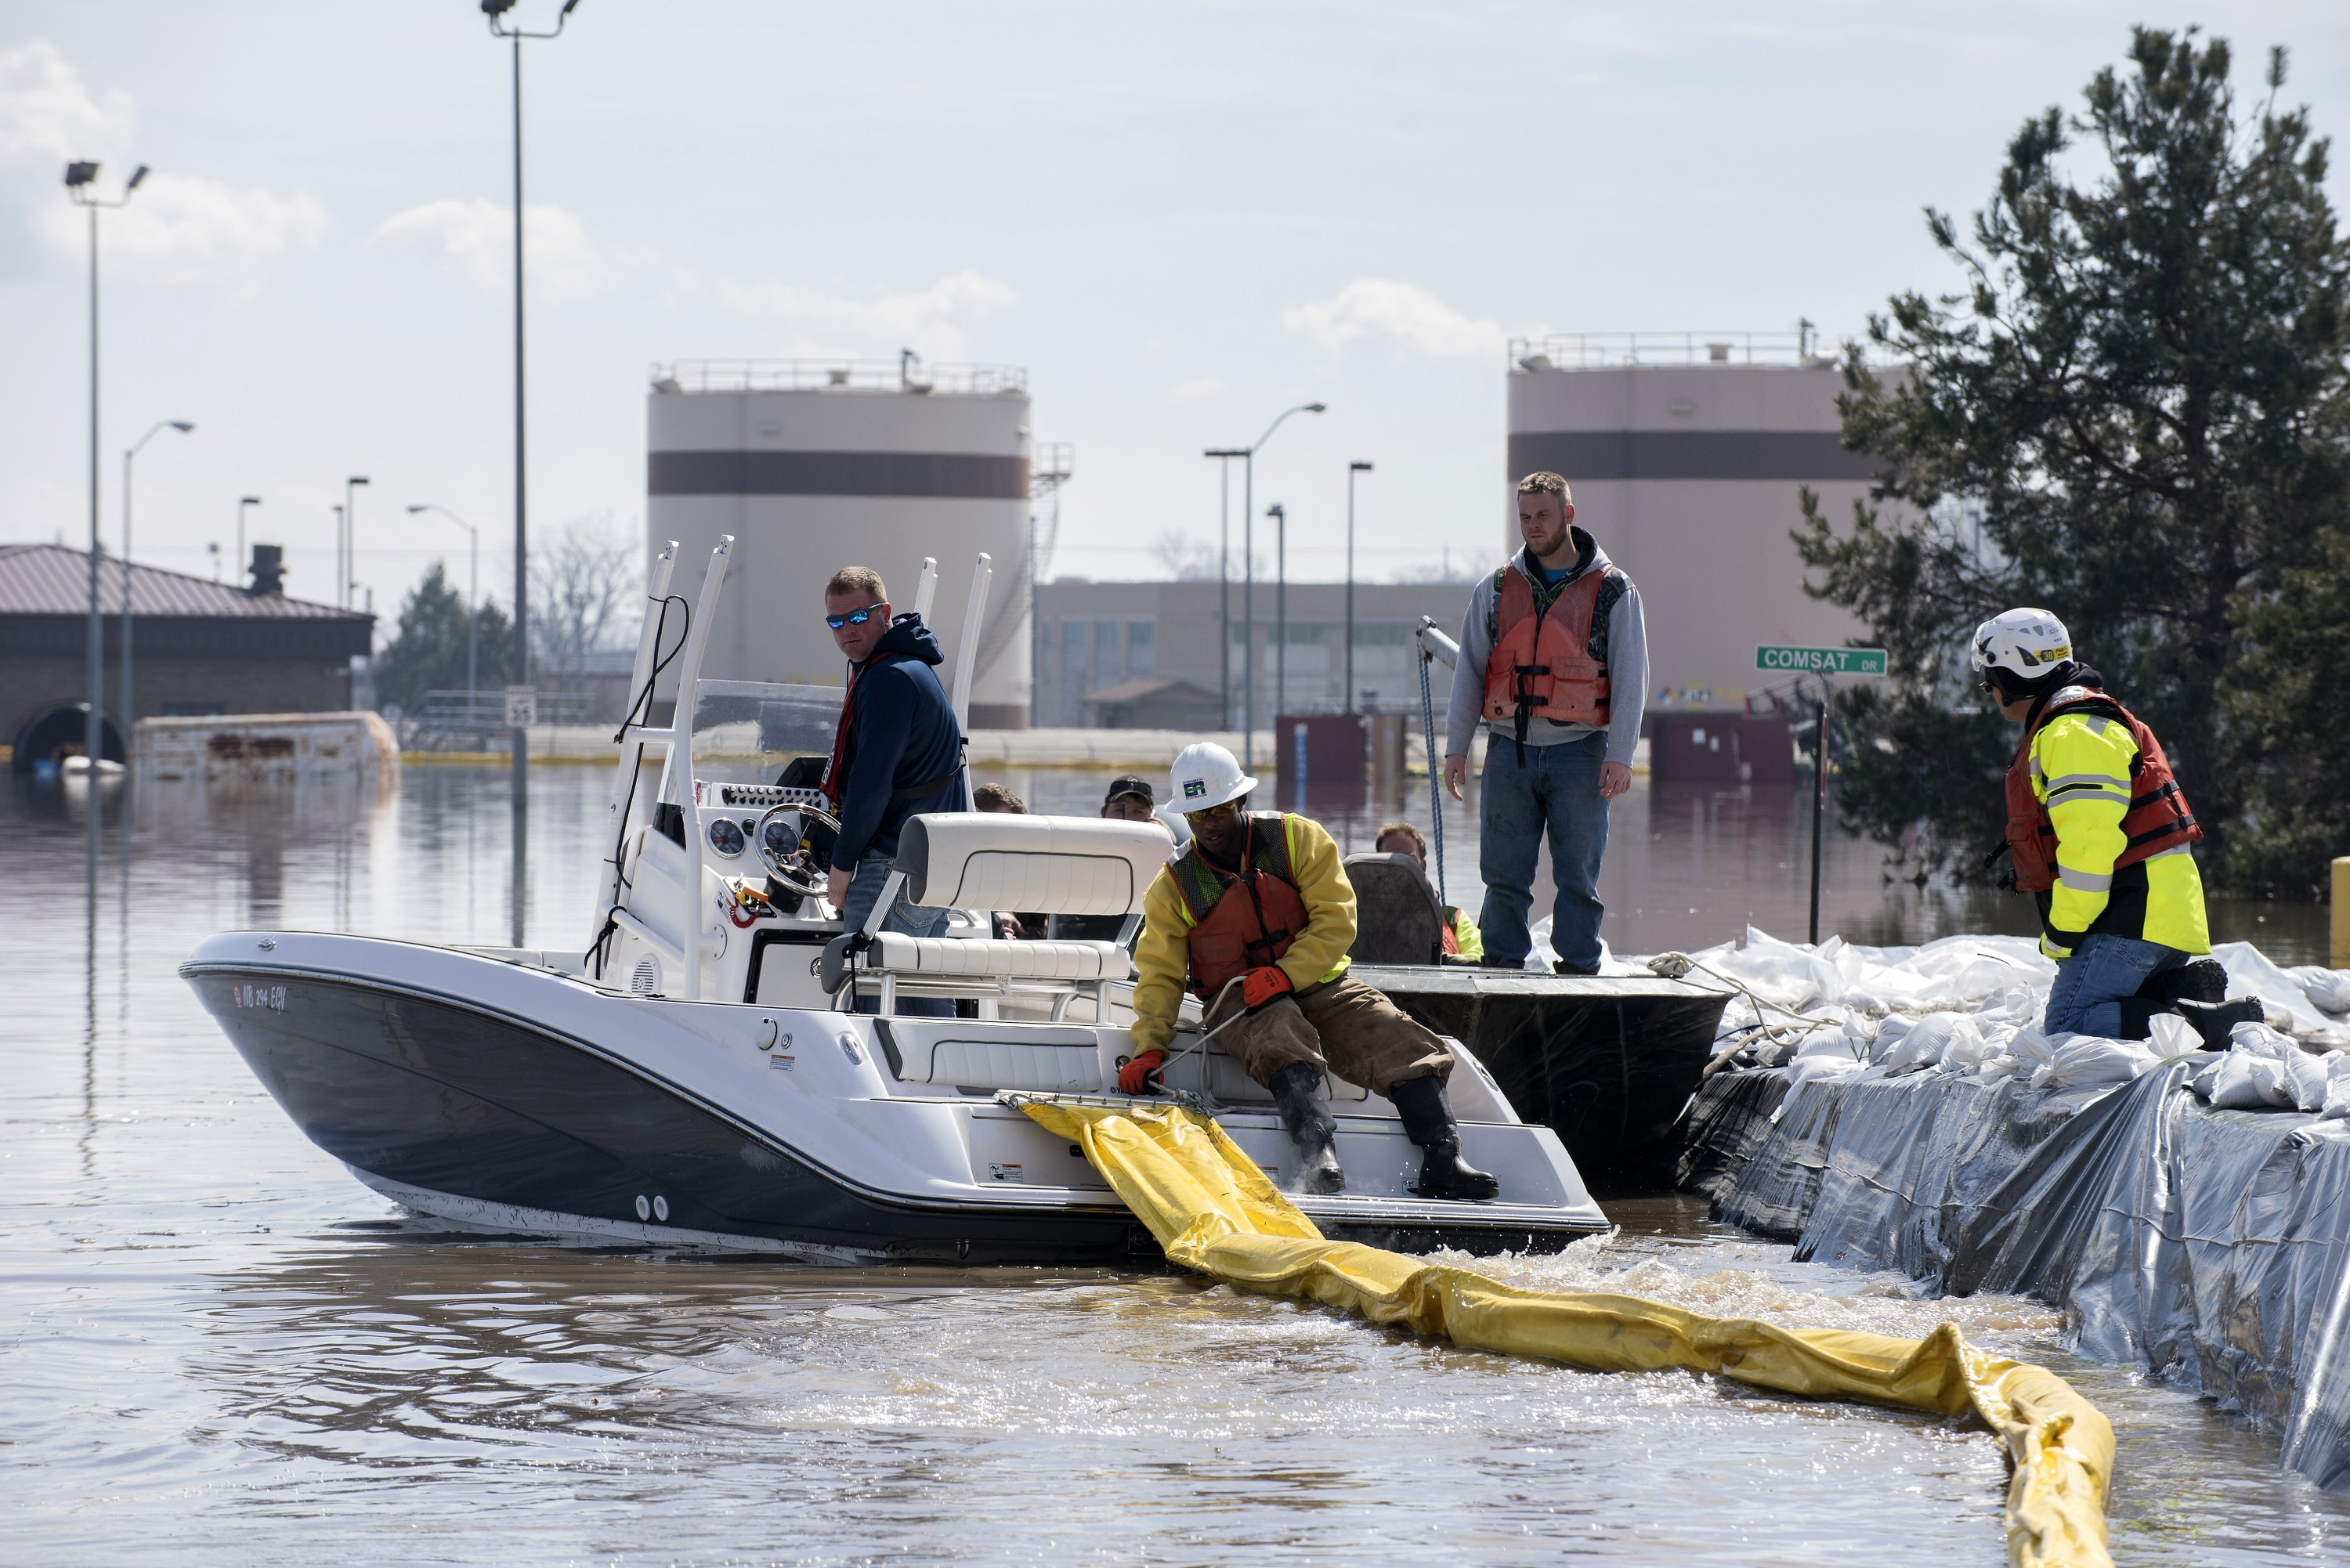 apnews.com - Margery A. Beck, Ellen Knickmeyer - Floods expose threat to military posed by climate change